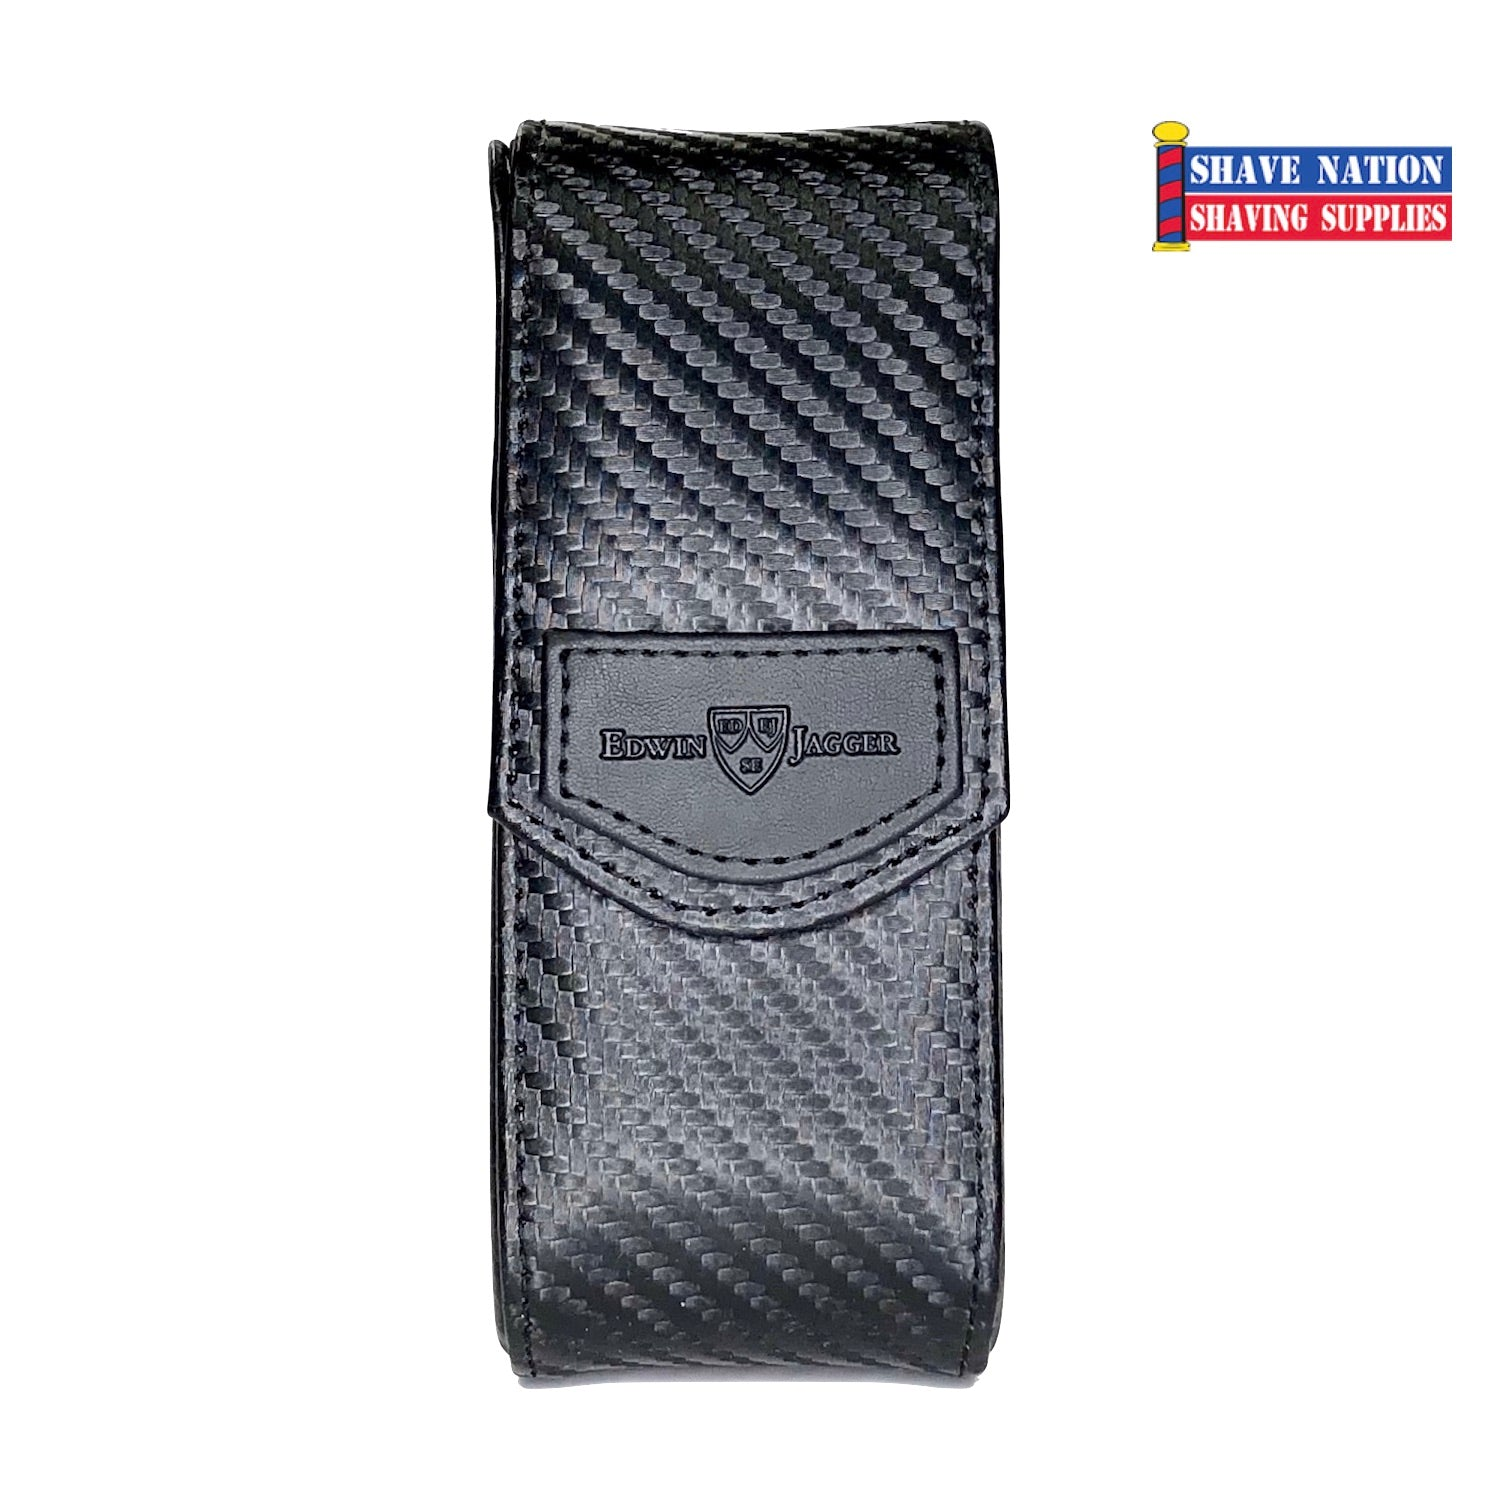 Edwin Jagger Cartridge Razor Case-Carbon Fibre Effect